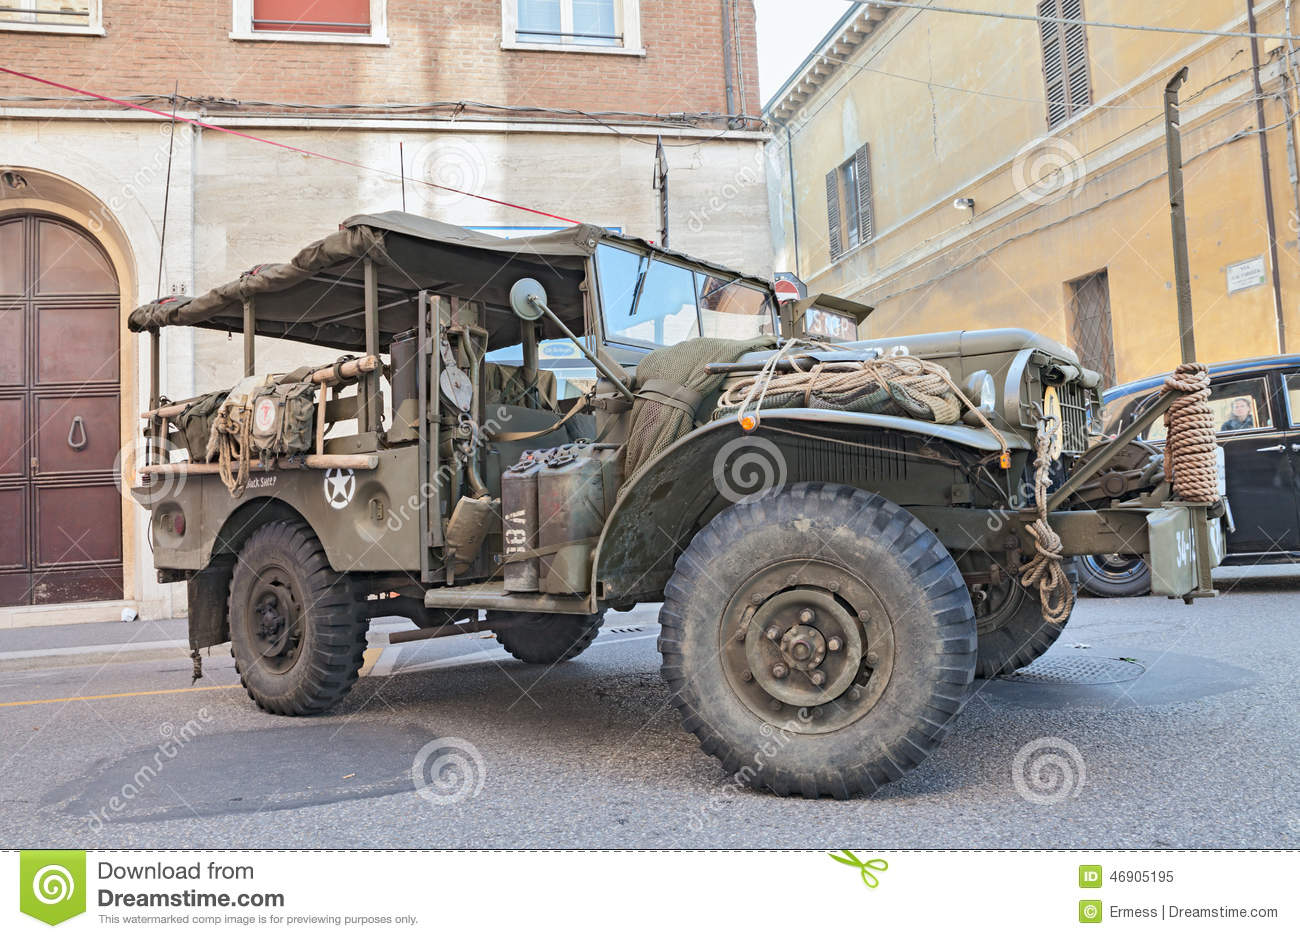 Dodge trucks in wwii - Editorial Stock Photo